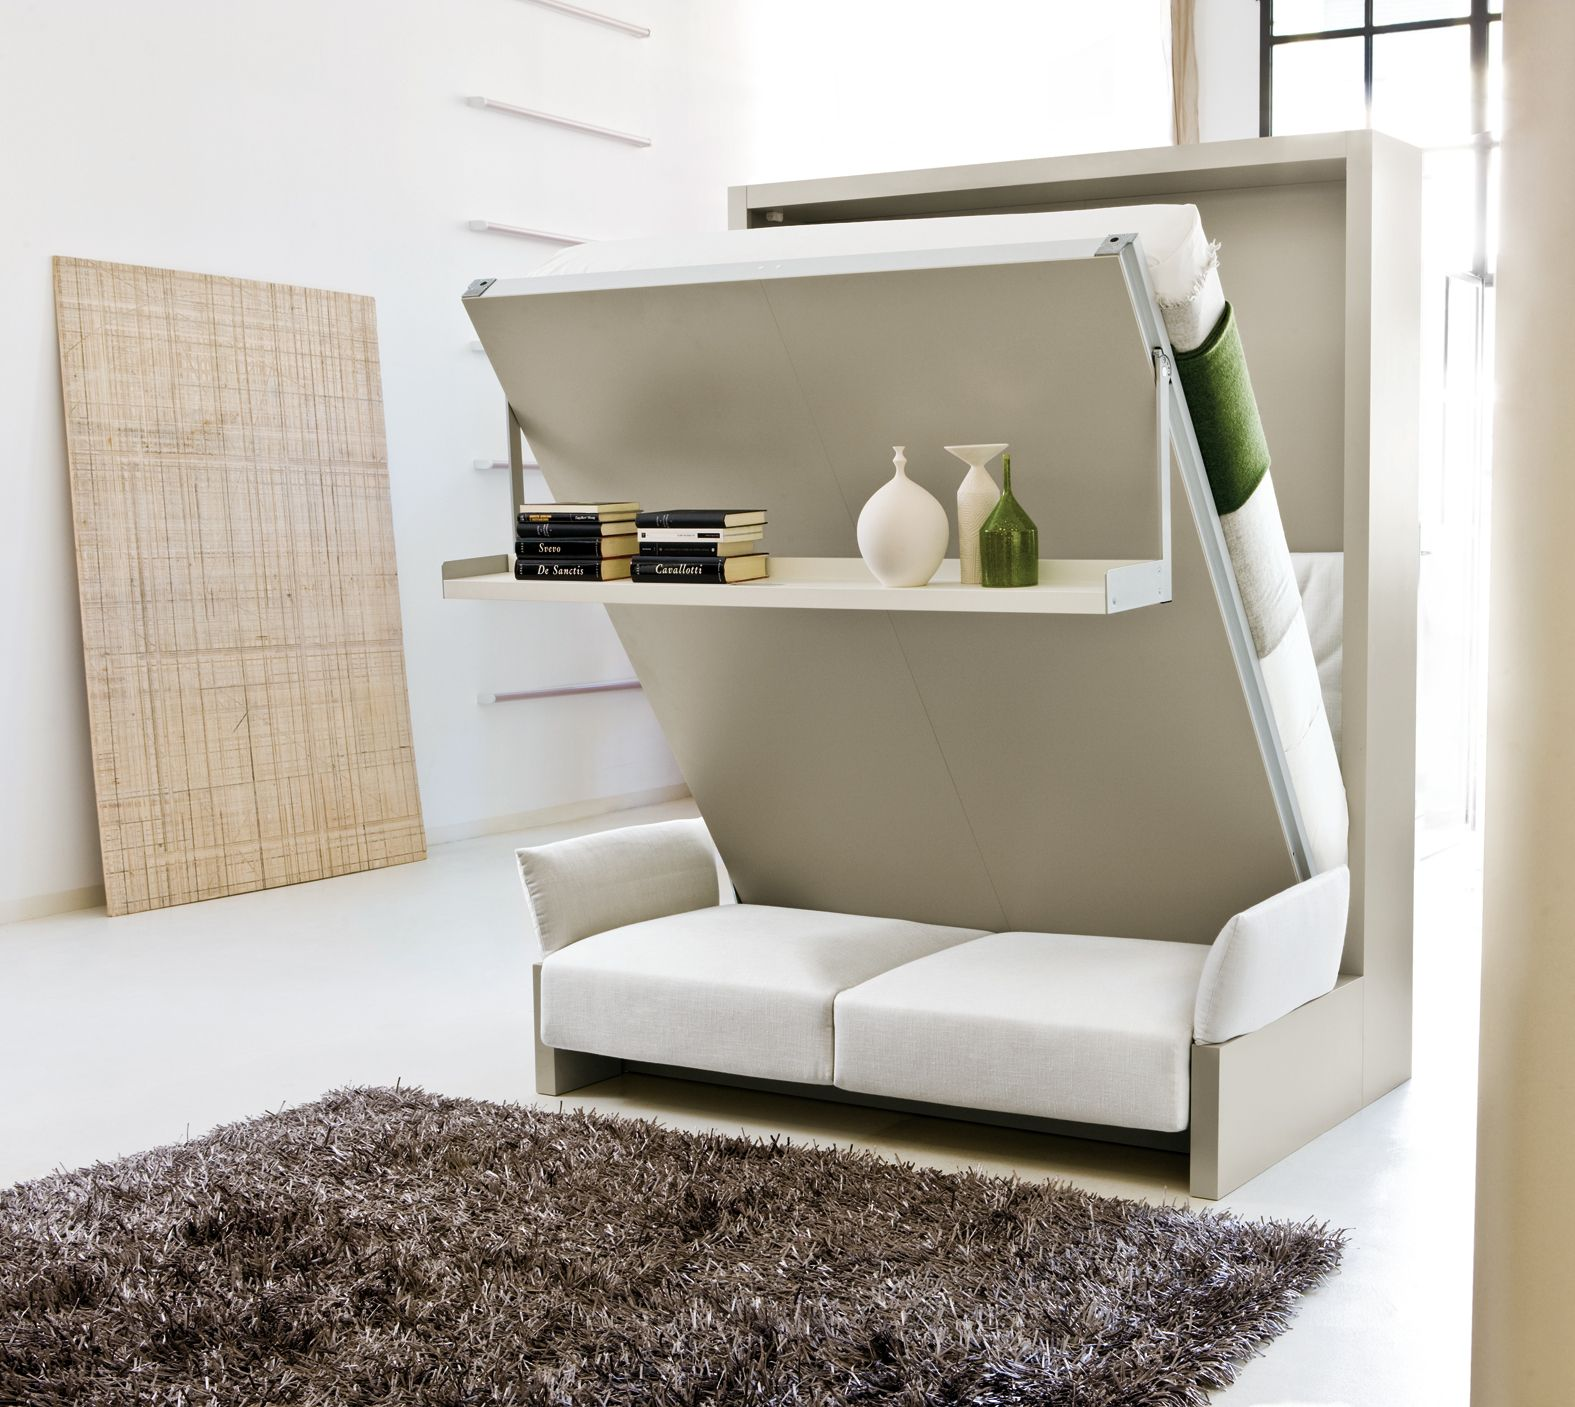 Murphy Beds: 9 Hide-Away Sleepers | Extra bed, Wall beds ...